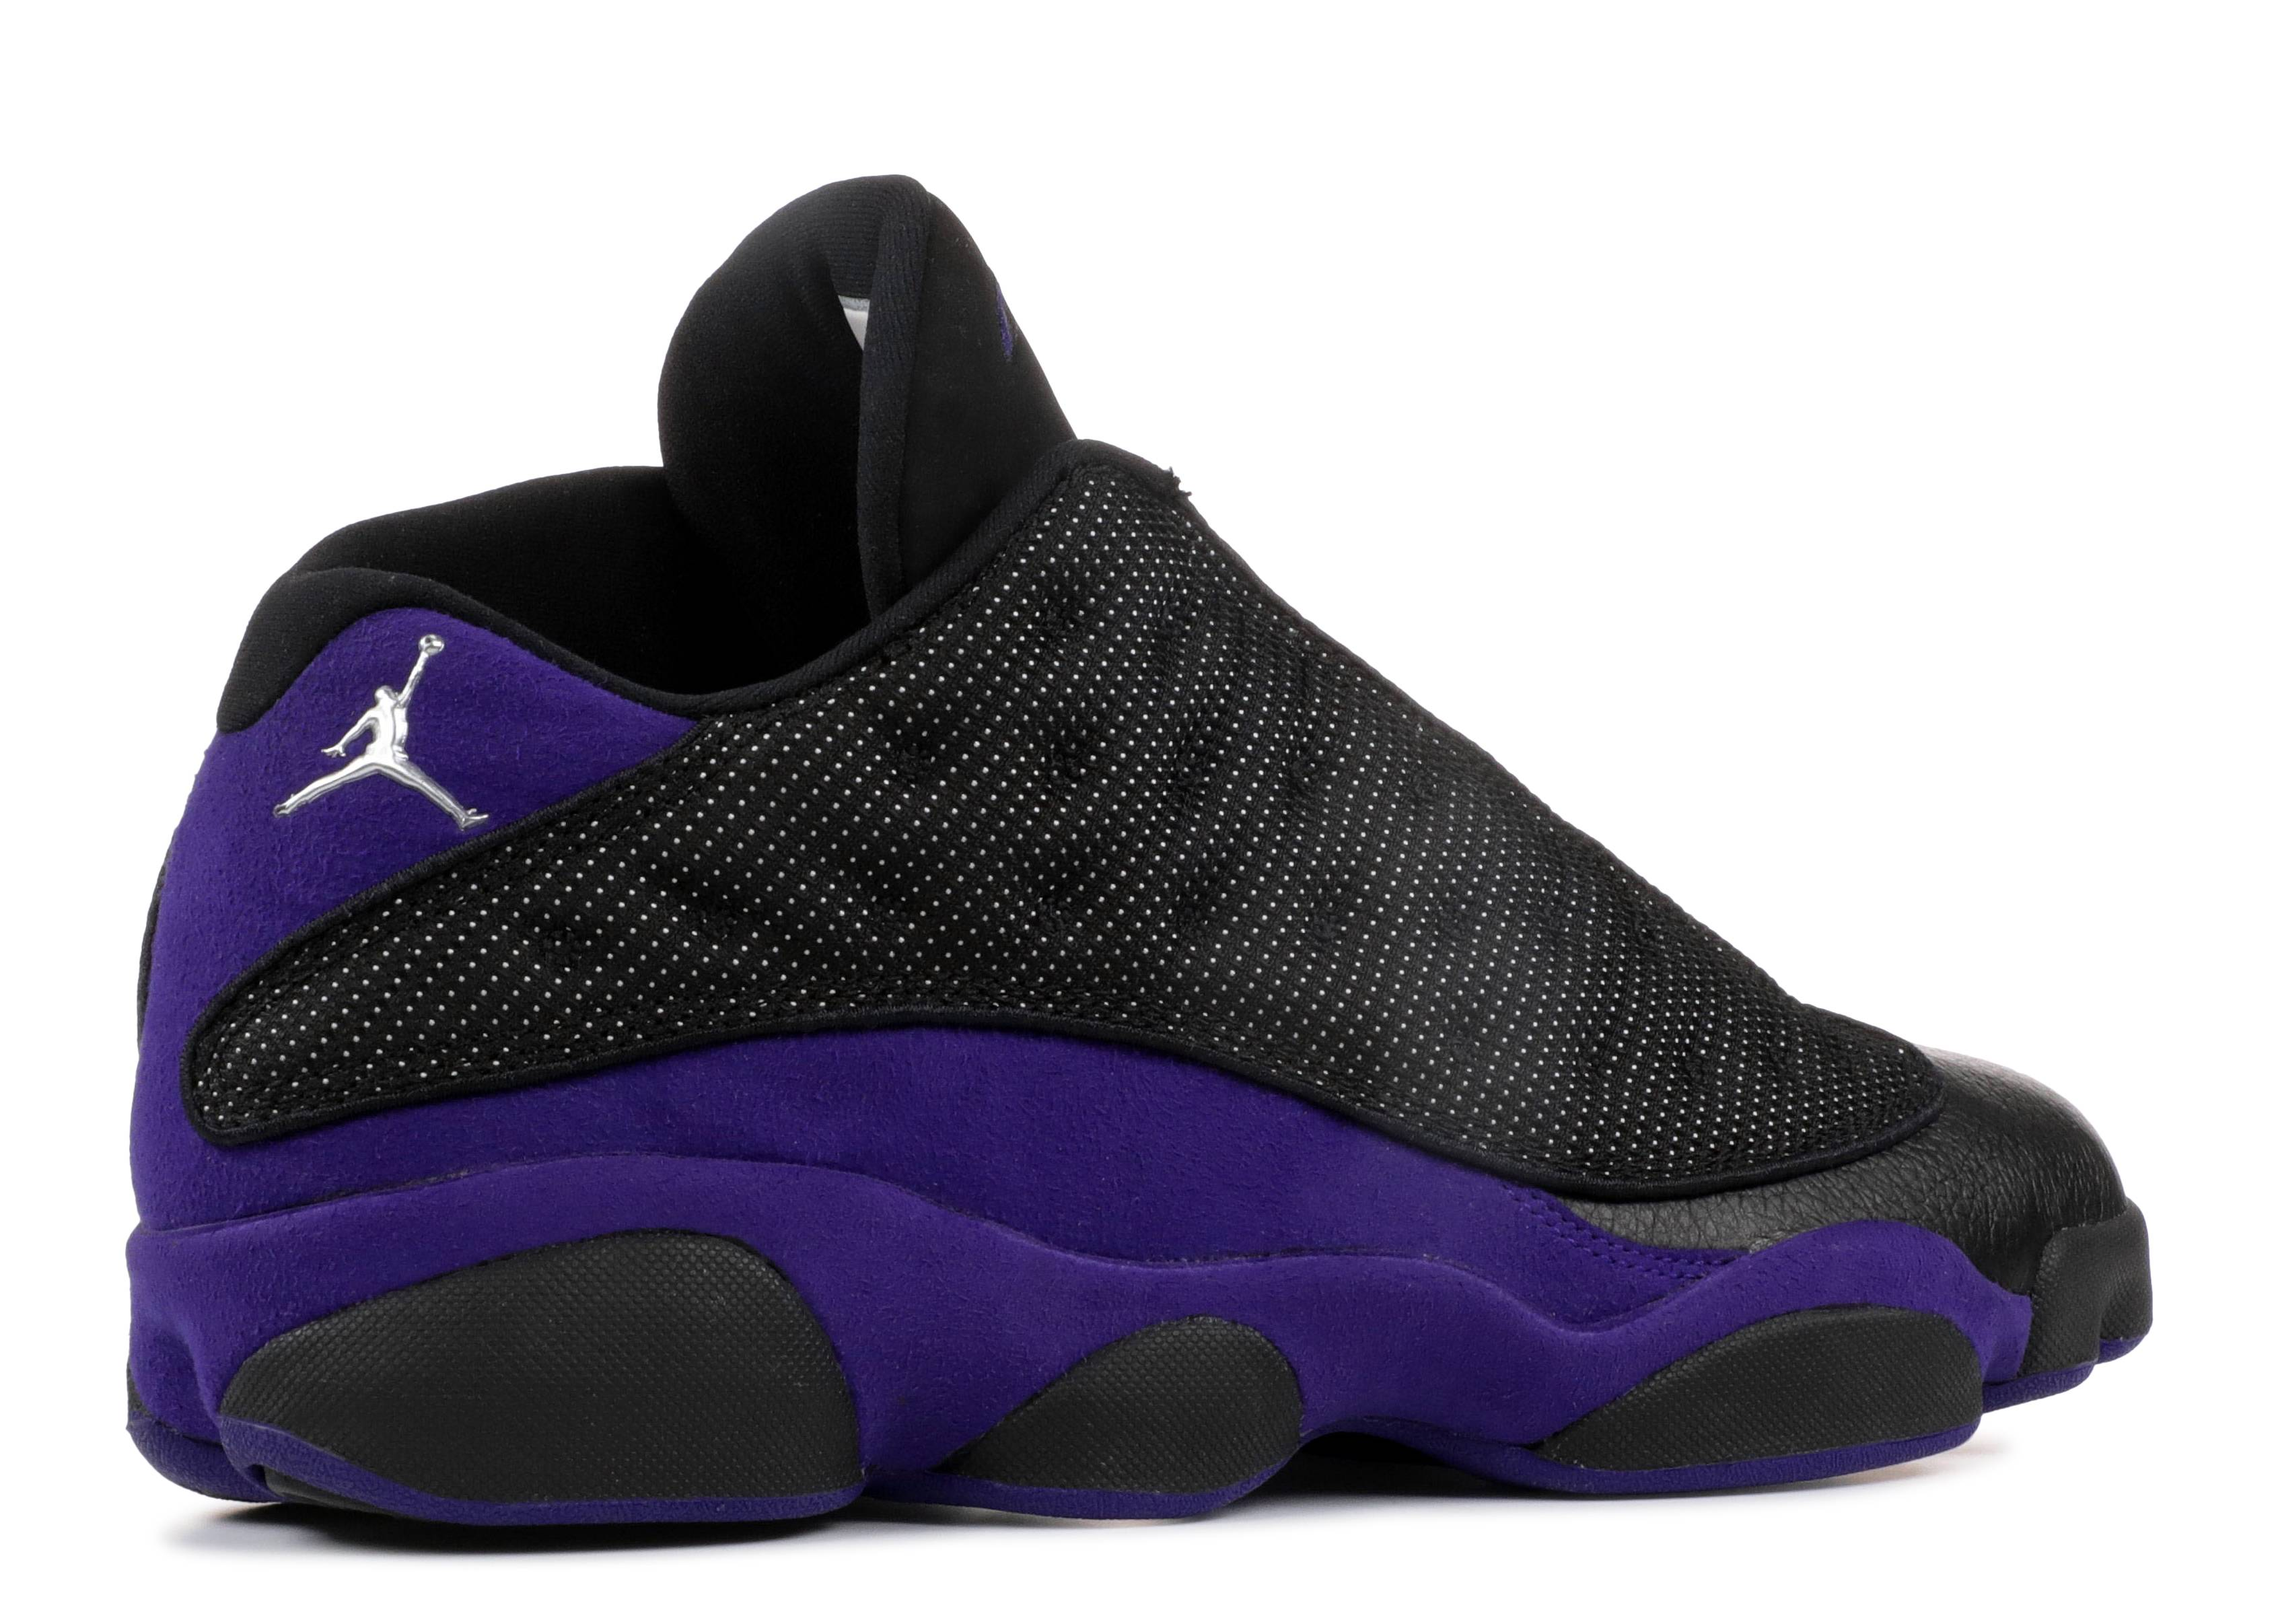 ff26d2d5aa2 ... greece air jordan 13 low pe black purple def41 aad55